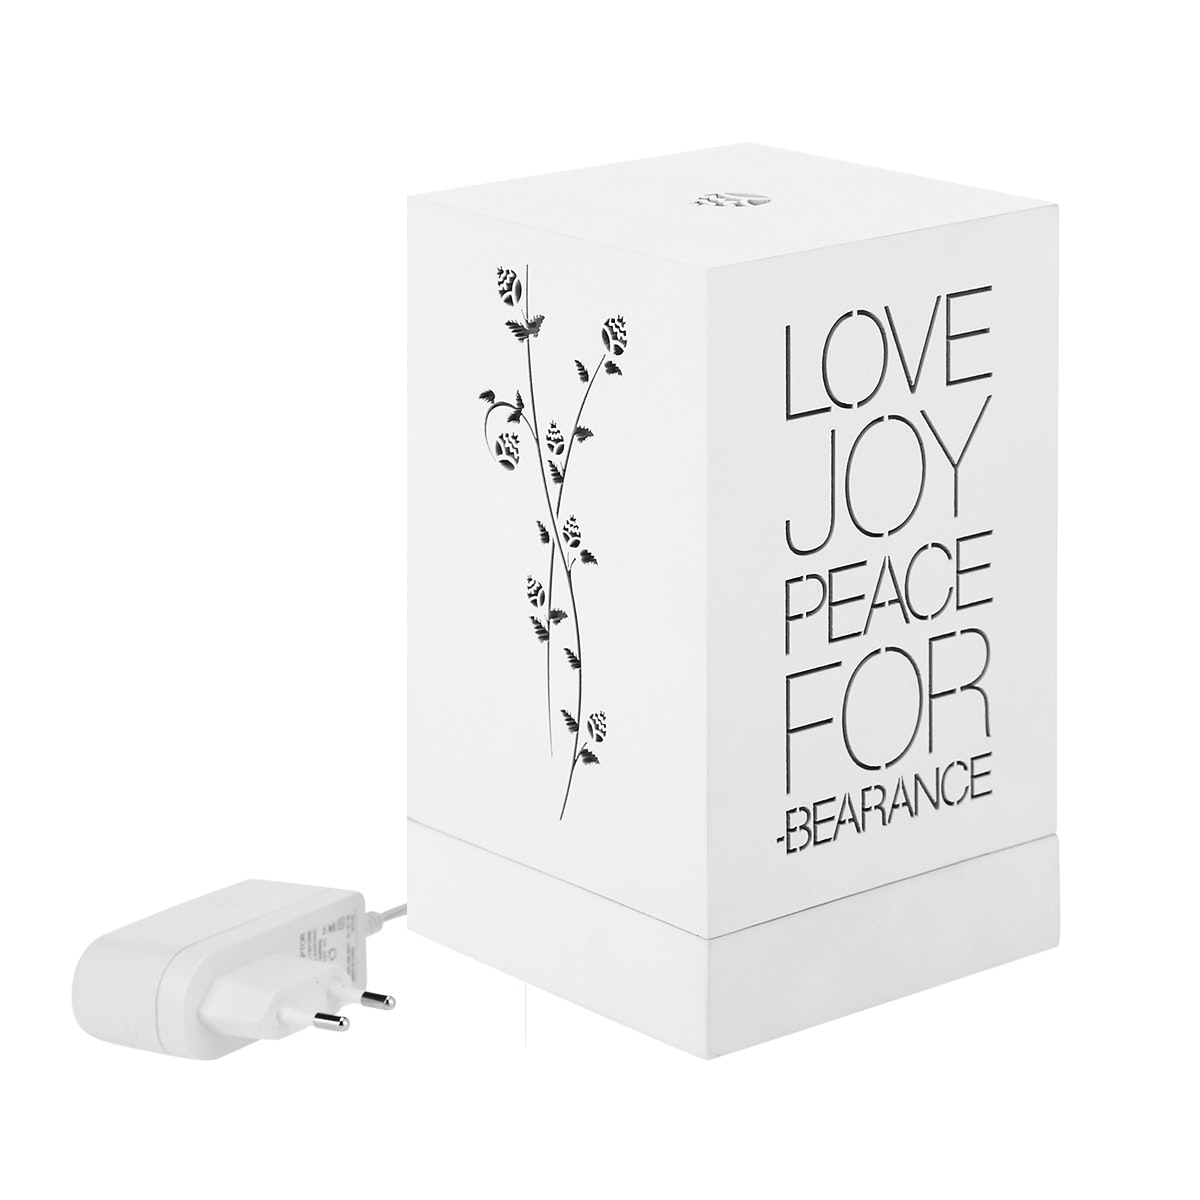 Zeven Lantern Box - Love Joy Peace - Full Color Lamp